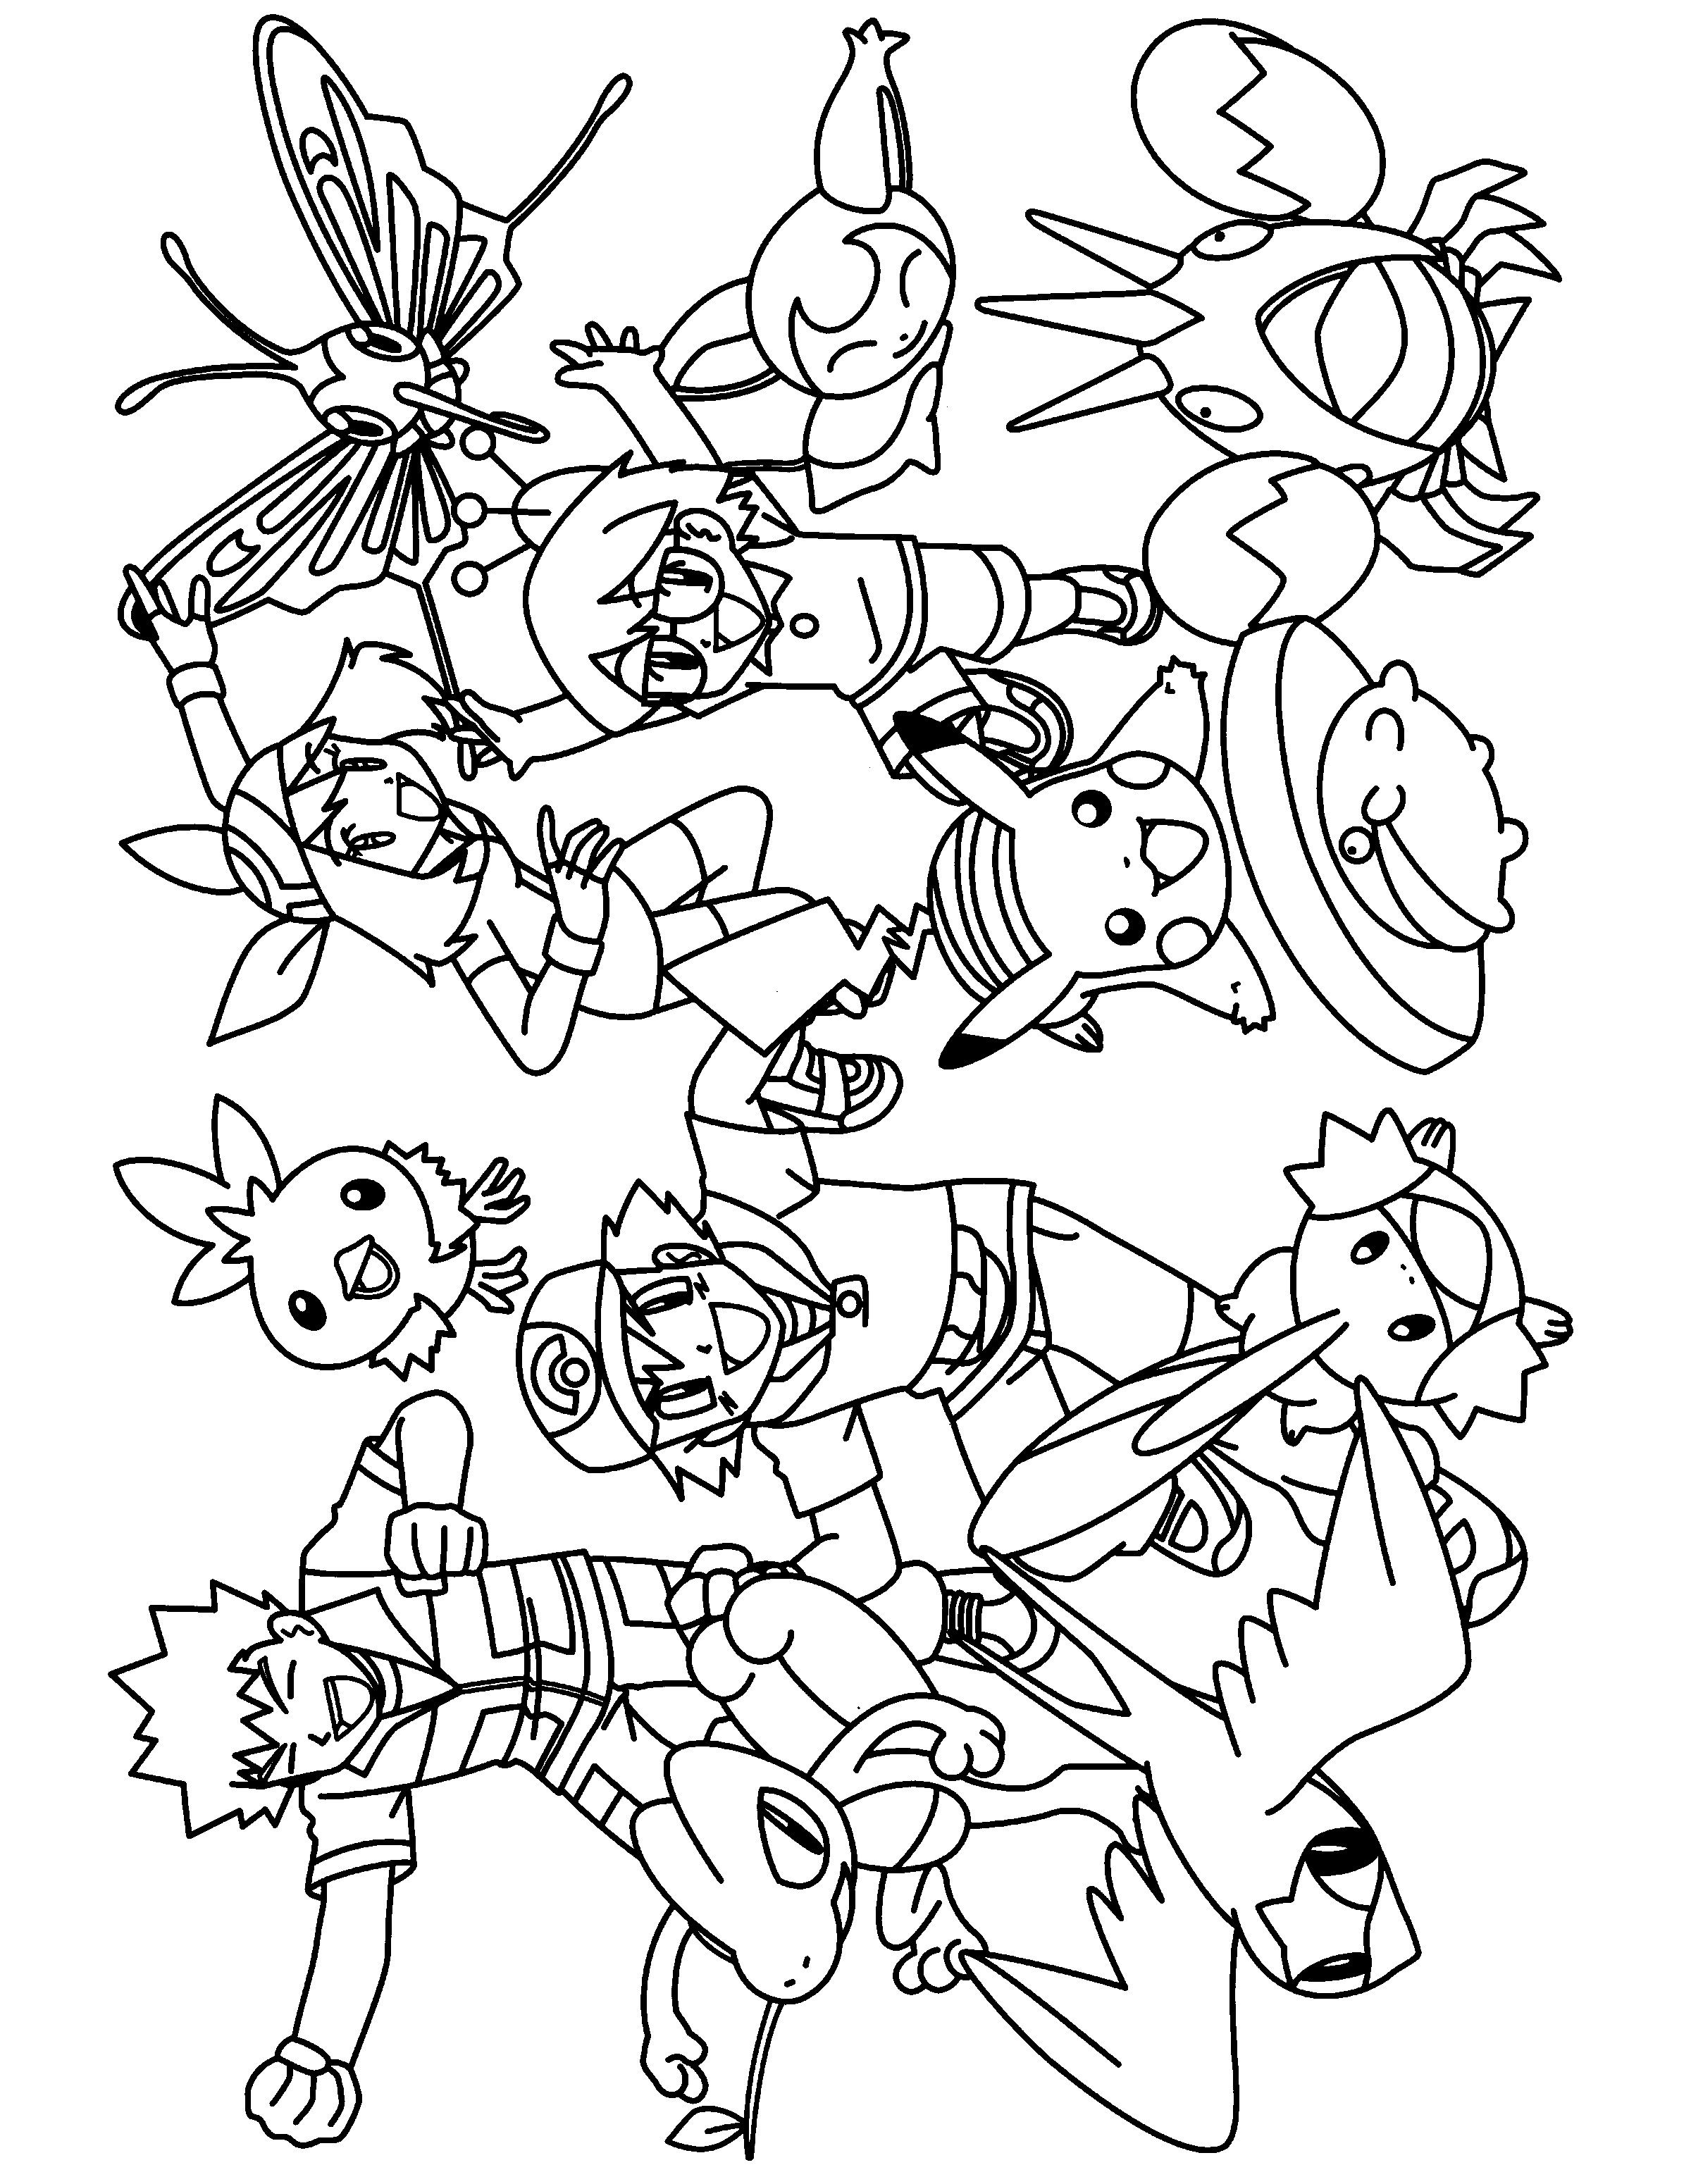 Pokemon Group Coloring Pages Through The Thousand Pictures On The Net In Relation To Pokemon Grou Pokemon Coloring Pages Pokemon Coloring Star Coloring Pages